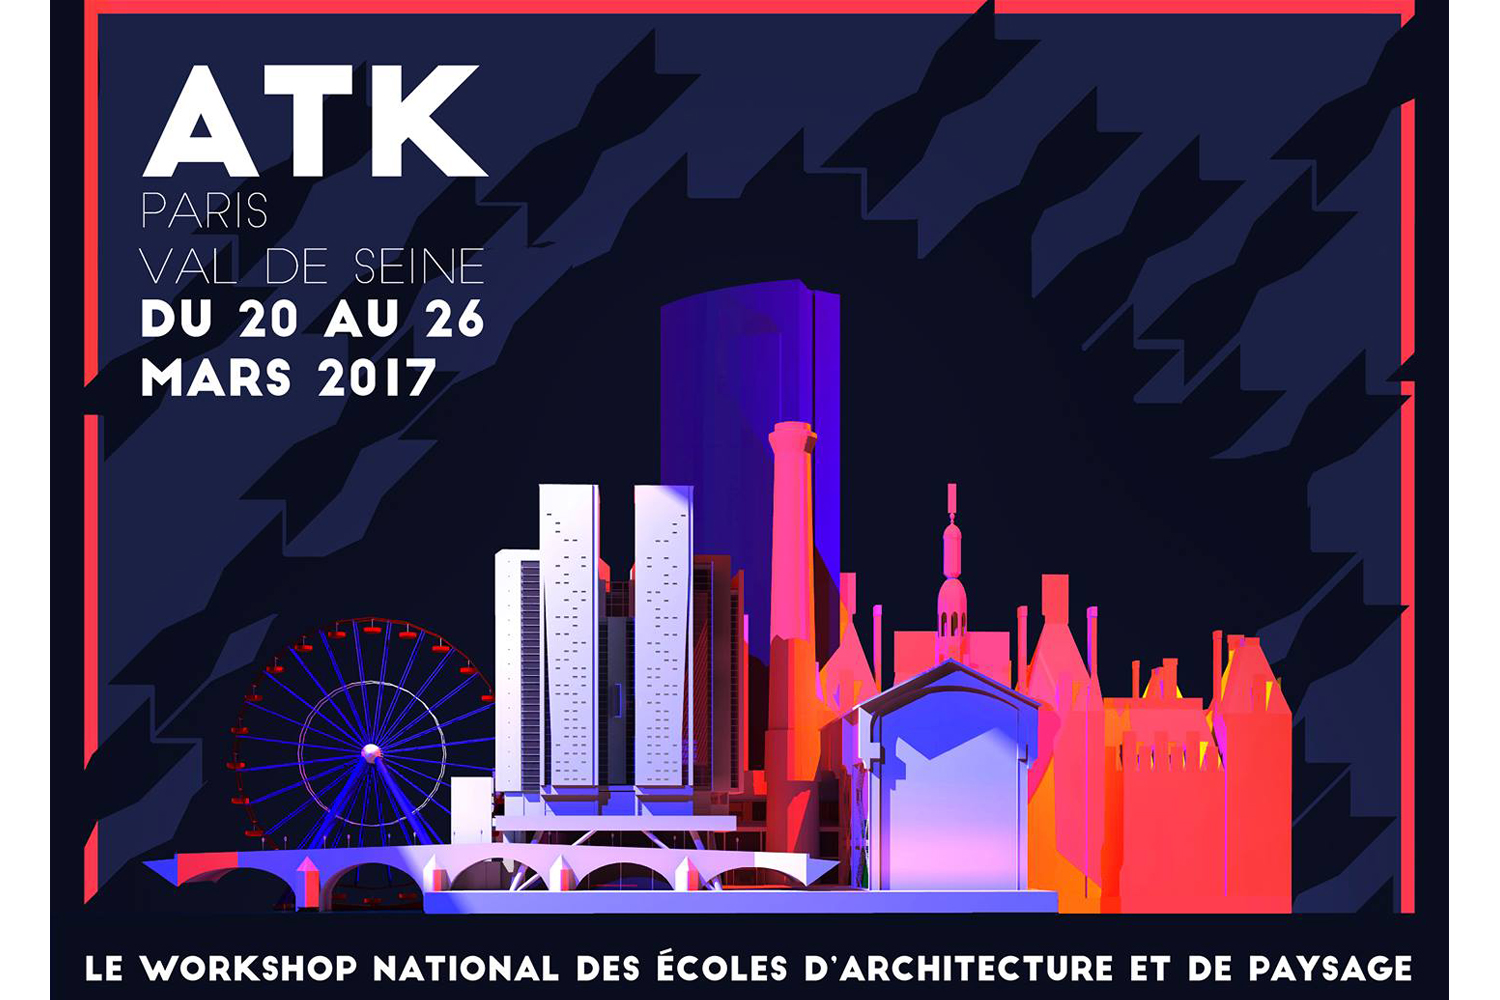 WORKSHOP ARCHITEKTONIC, ATK DU 20 AU 26 MARS À L'ENSA PARIS VAL DE SEINE !